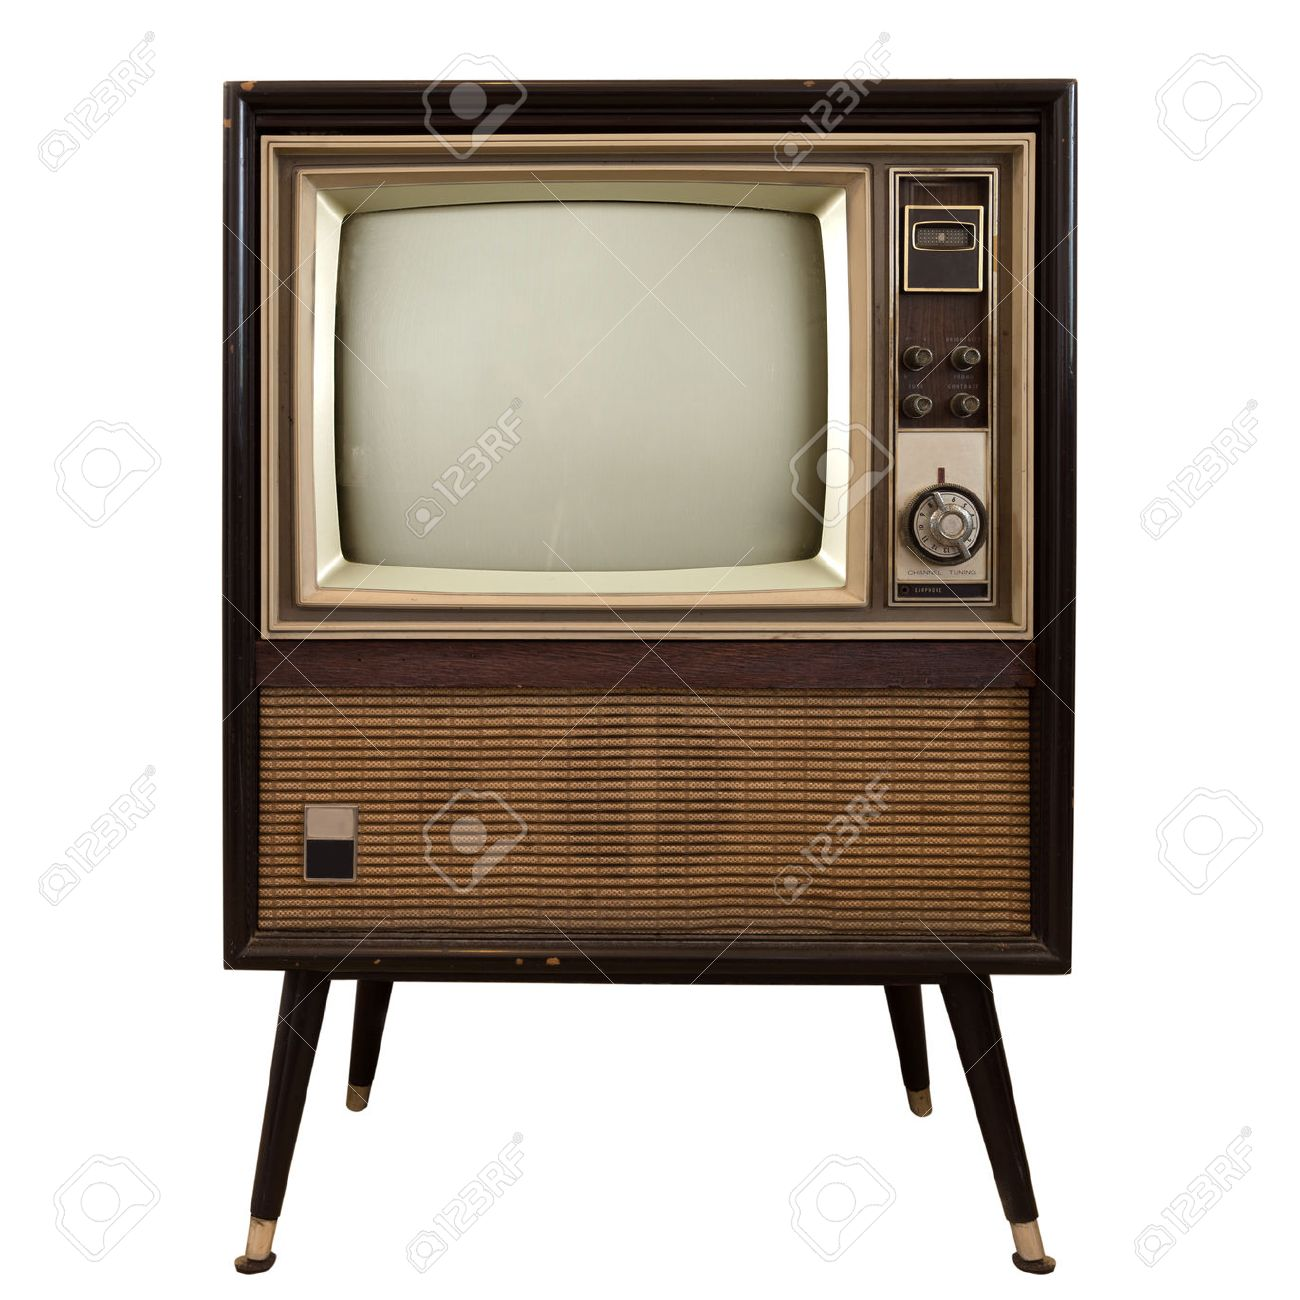 Vintage television - old TV isolate on white ,retro technology - 50570981